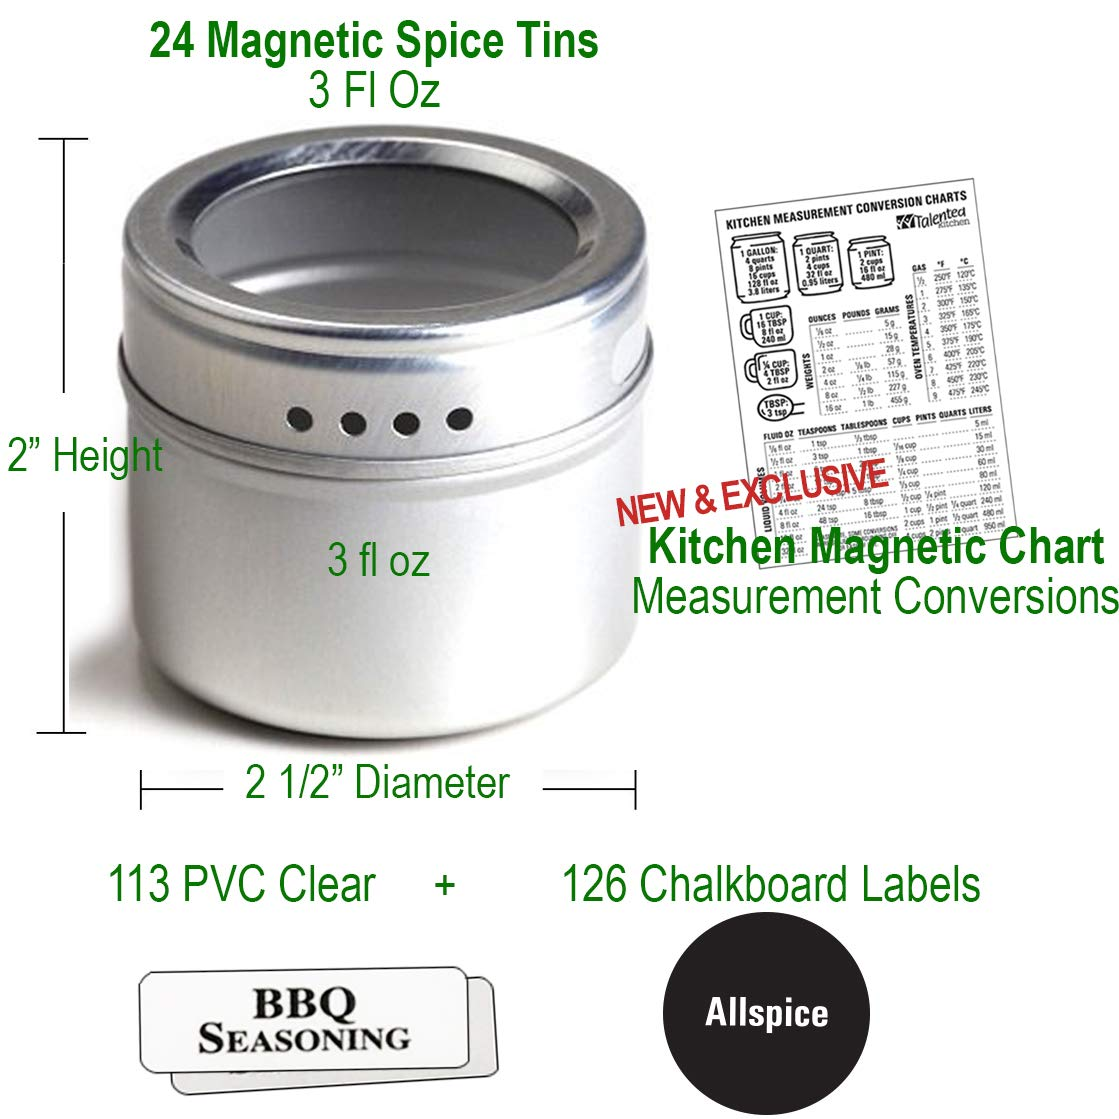 24 Magnetic Spice Tins & 2 Types of Spice Labels, Authentic by Talented Kitchen. 24 Storage Spice Containers, Window Top w/Sift-Pour. 113 Clear & 126 Chalkboard Stickers. Rack Magnetic On Refrigerator by Talented Kitchen (Image #5)